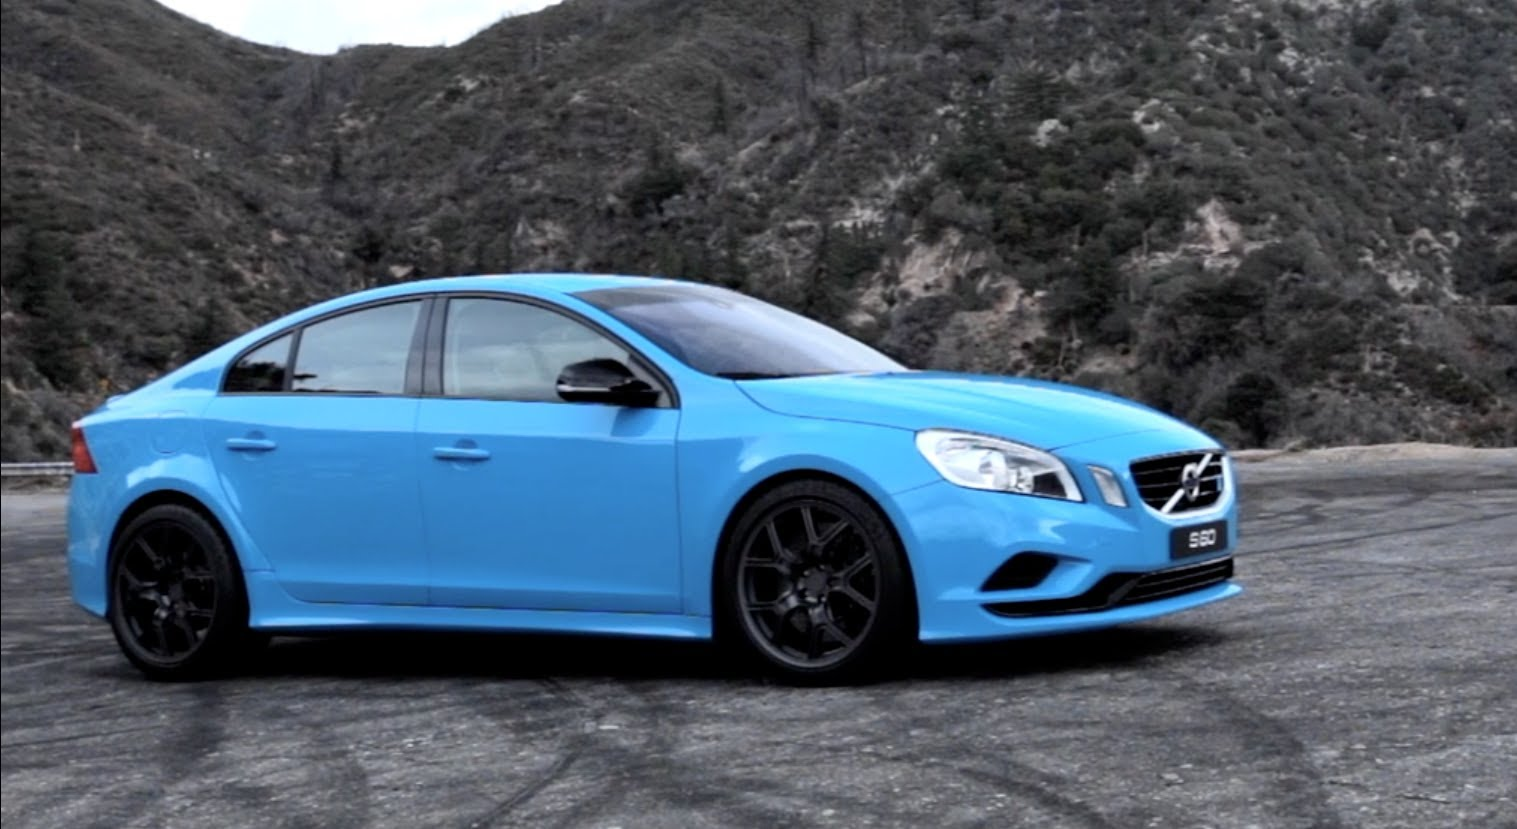 volvo s60 images #8